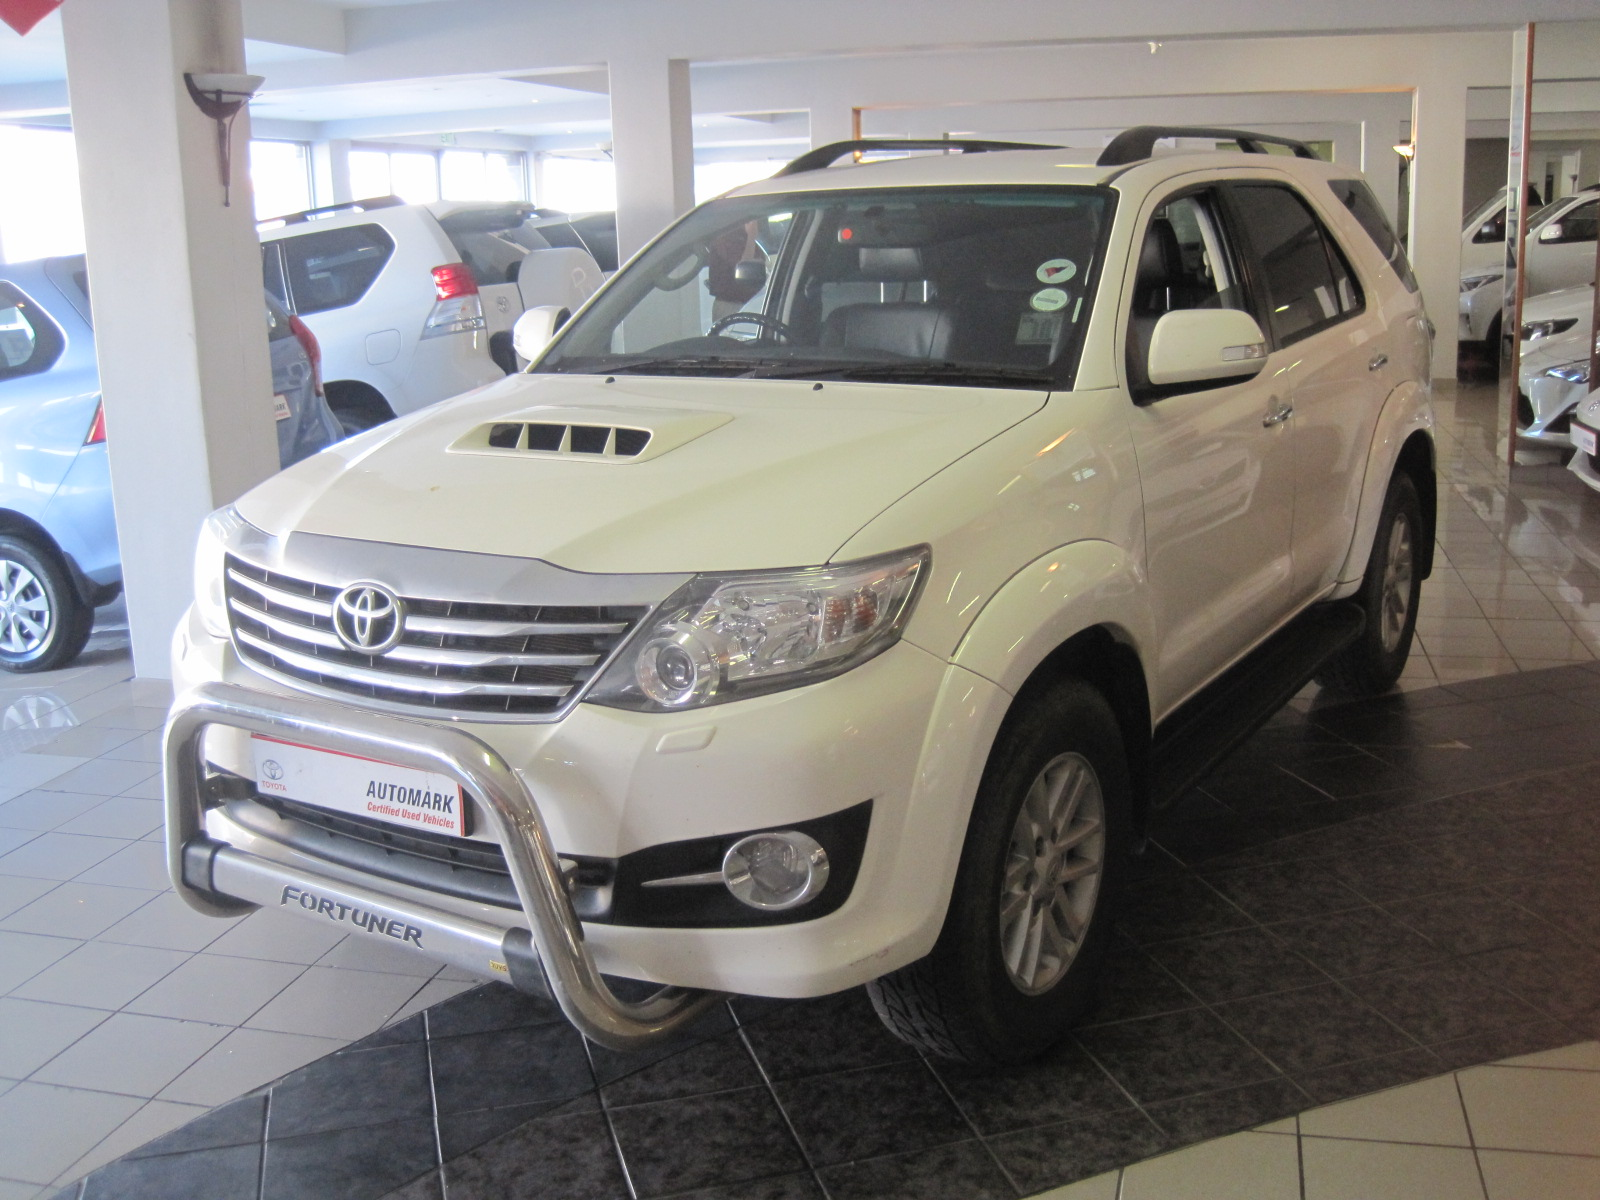 Cars for Sale Near Me Gumtree New Gumtree Used Vehicles for Sale Cars Olx Cars and Bakkies In Cape